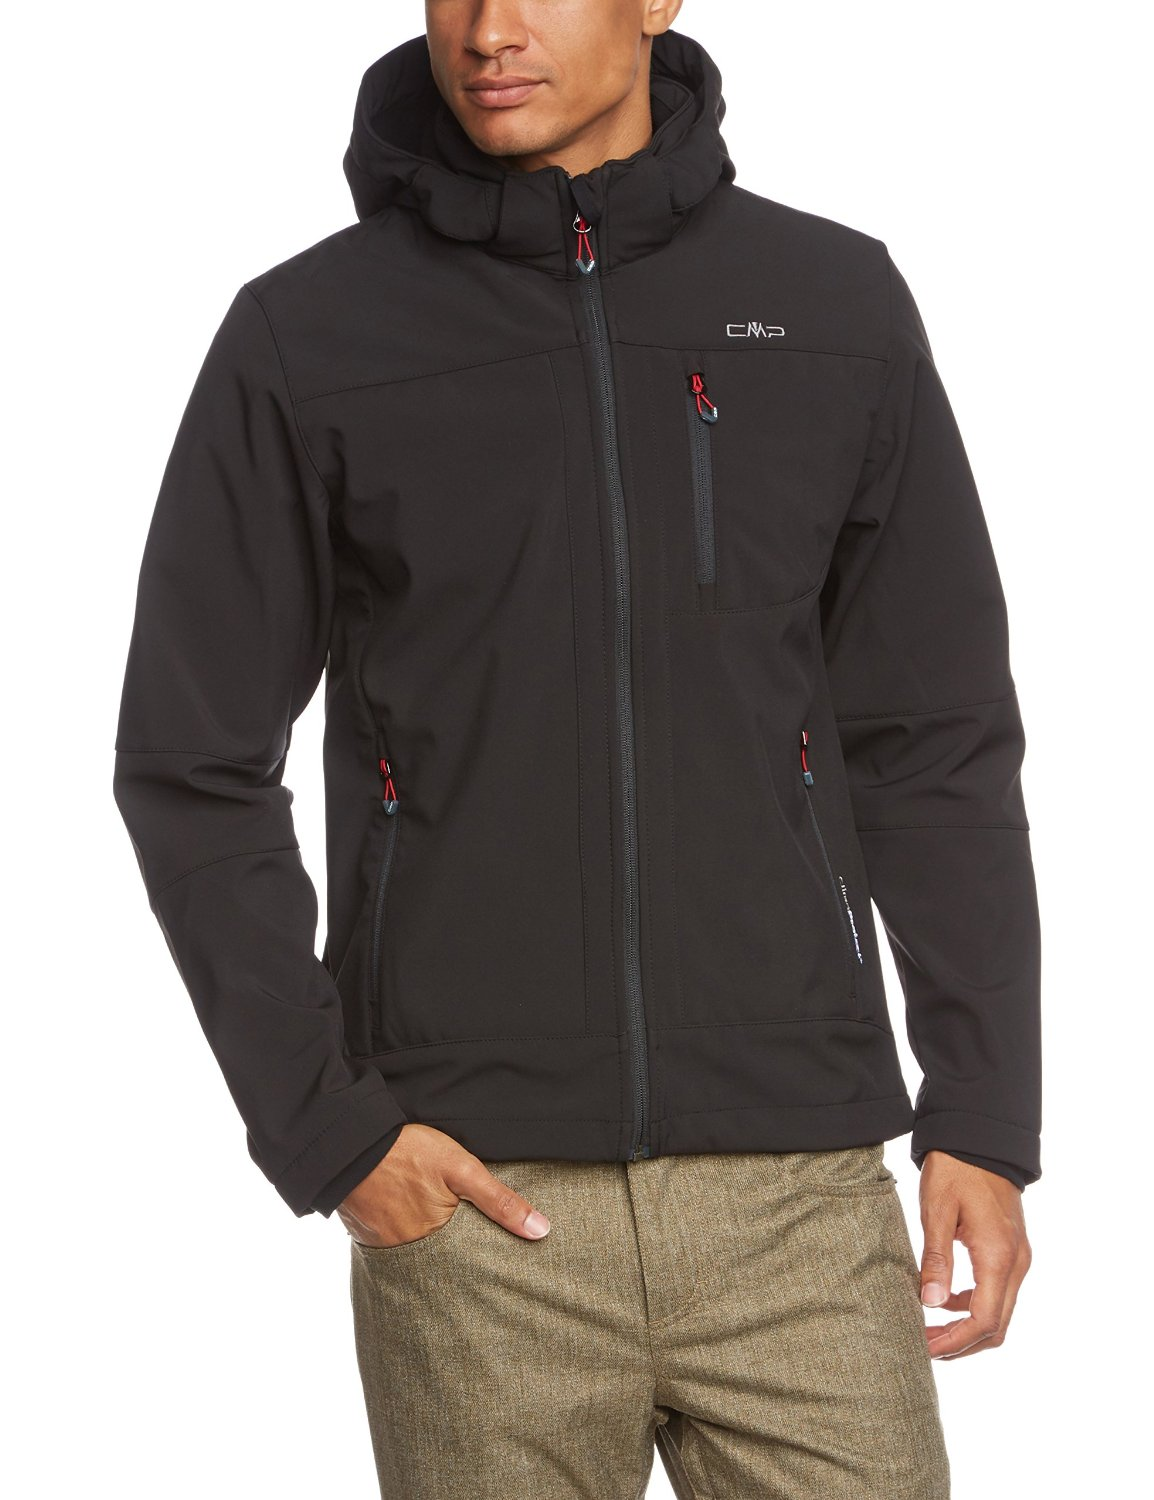 CMP Herren Softshell funktionsacke-im-test